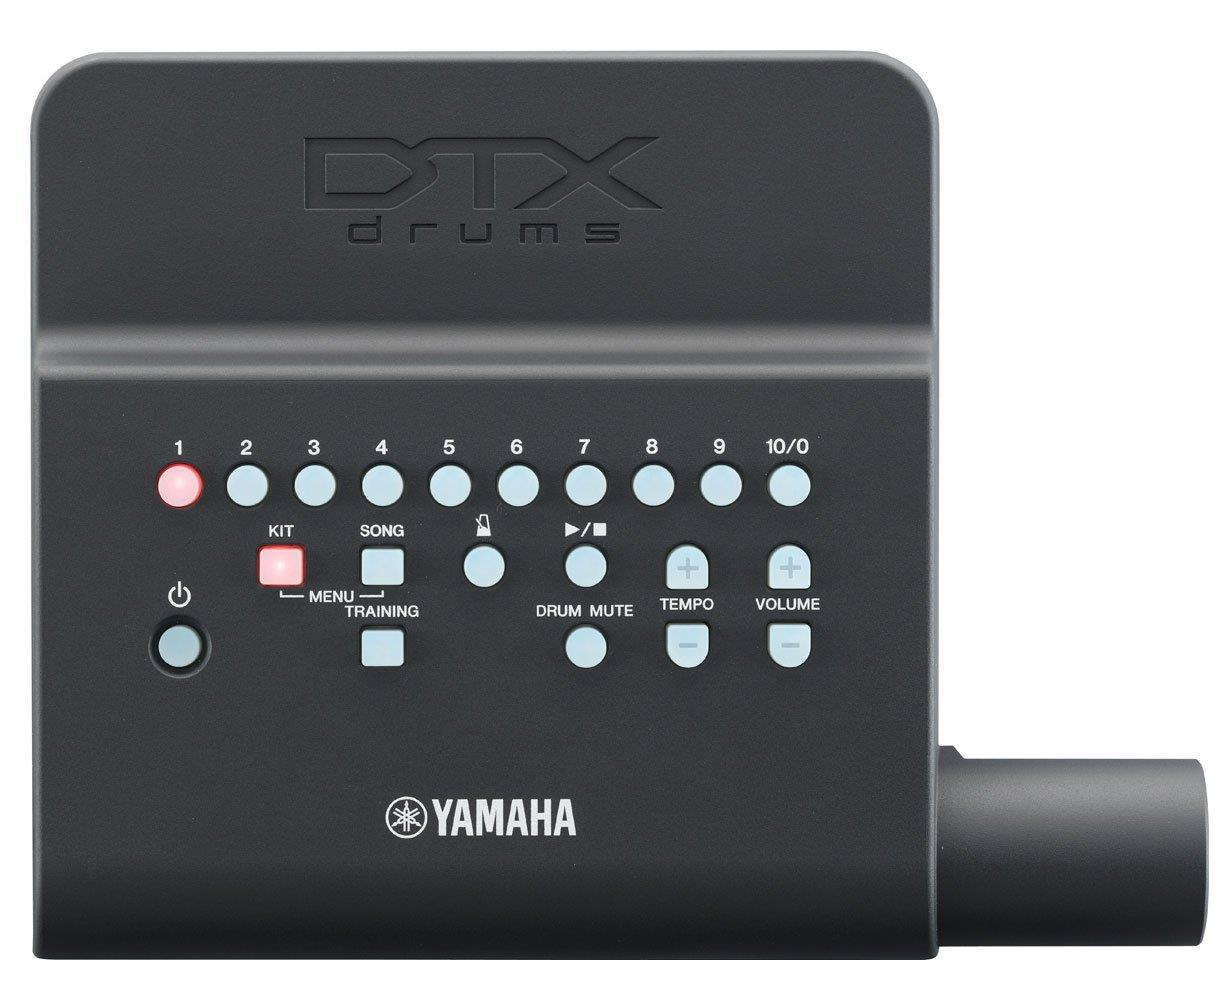 YAMAHA DTX450 DIGITAL DRUM WITH FREE DRUM STOOL